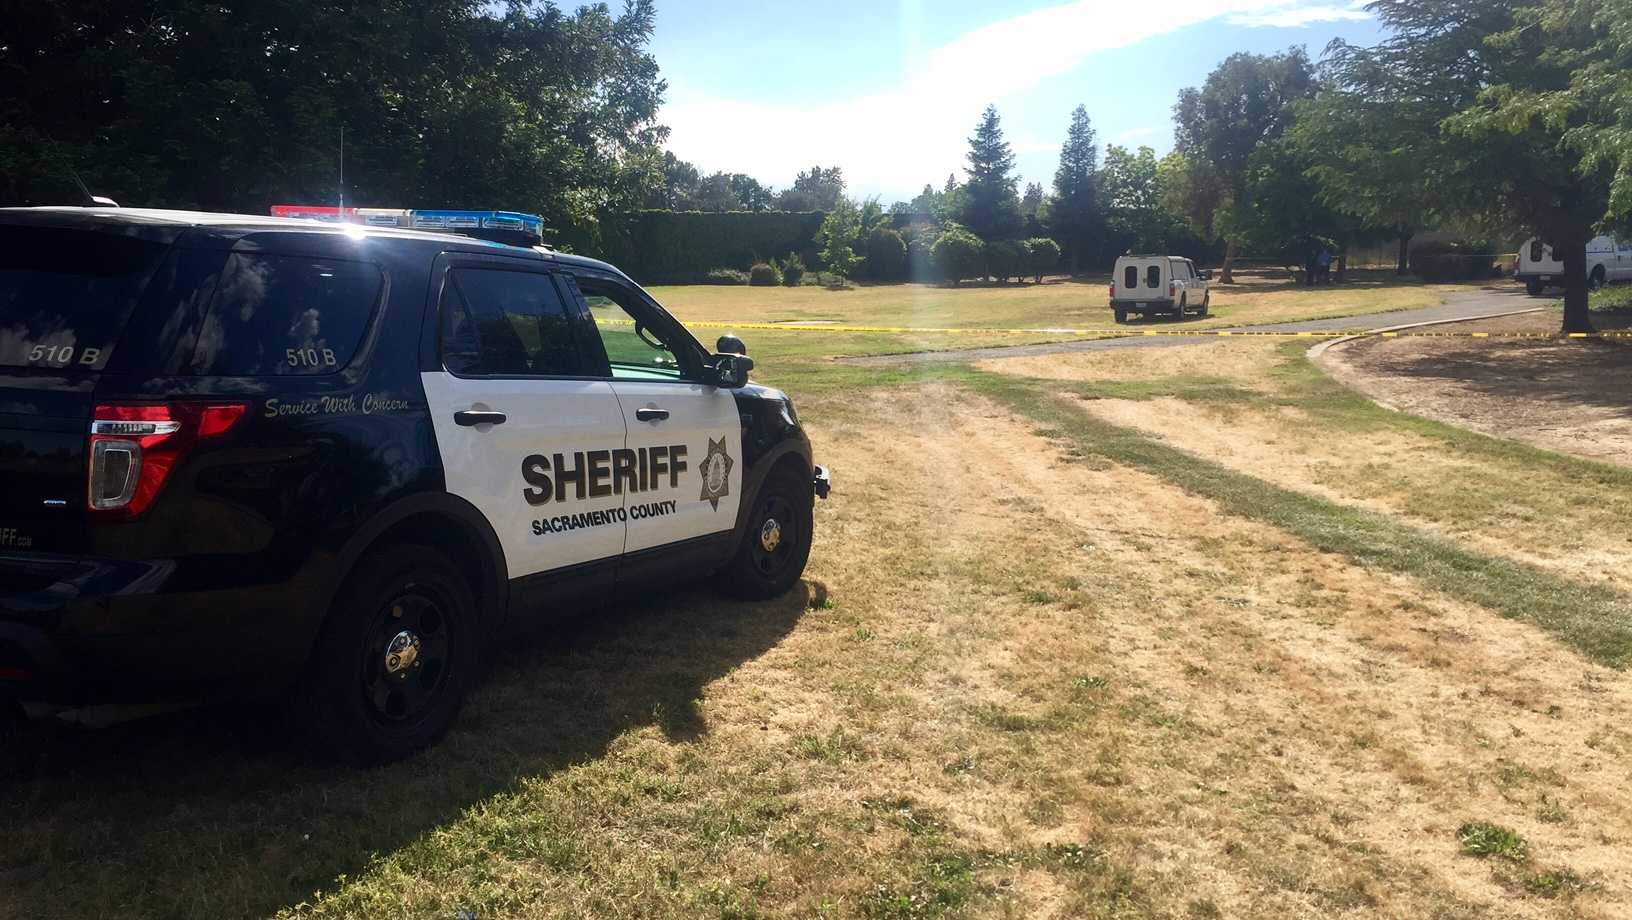 A man was found dead near a south Sacramento park on Sunday, May 14, 2017, the Sacramento County Sheriff's Department said.